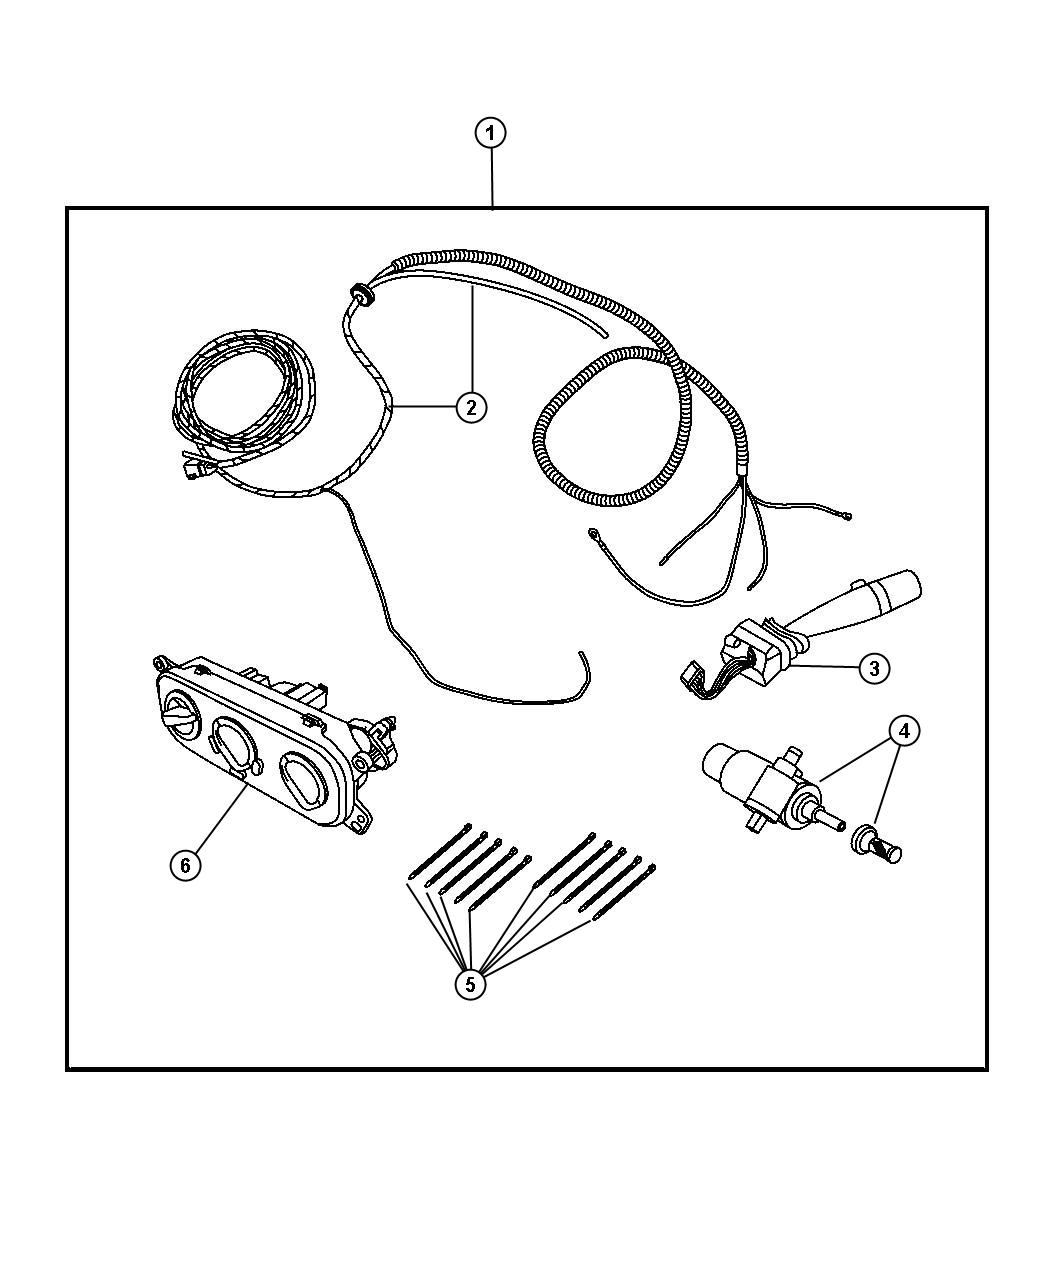 Jeep Wrangler Switch and wiring package, includes wiring